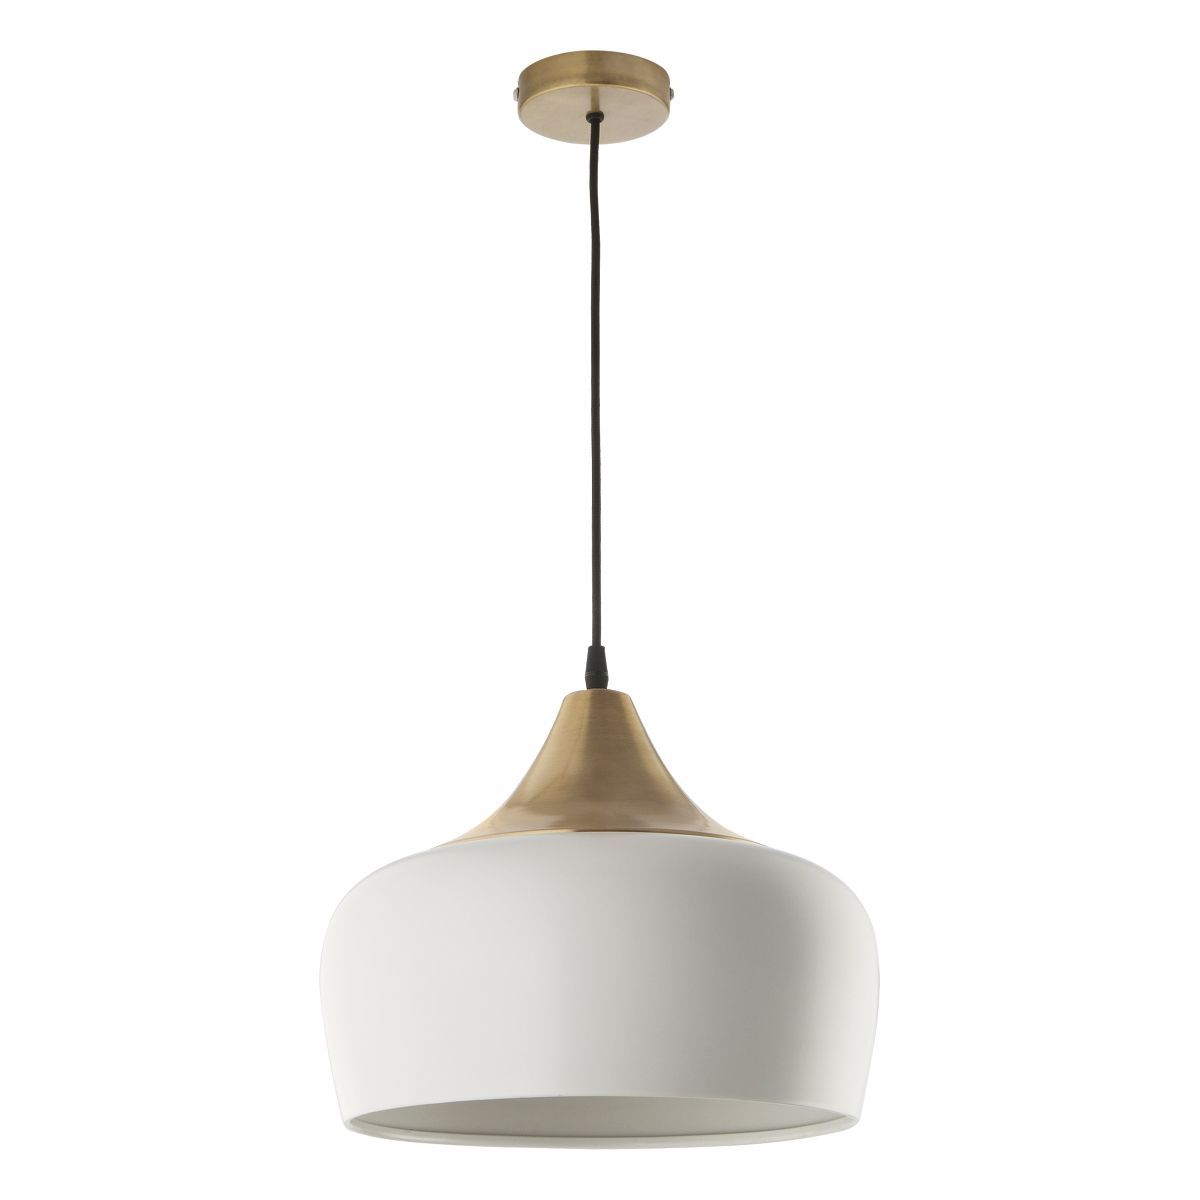 1 Light Pendant In White & Antique Brass - ID 7737